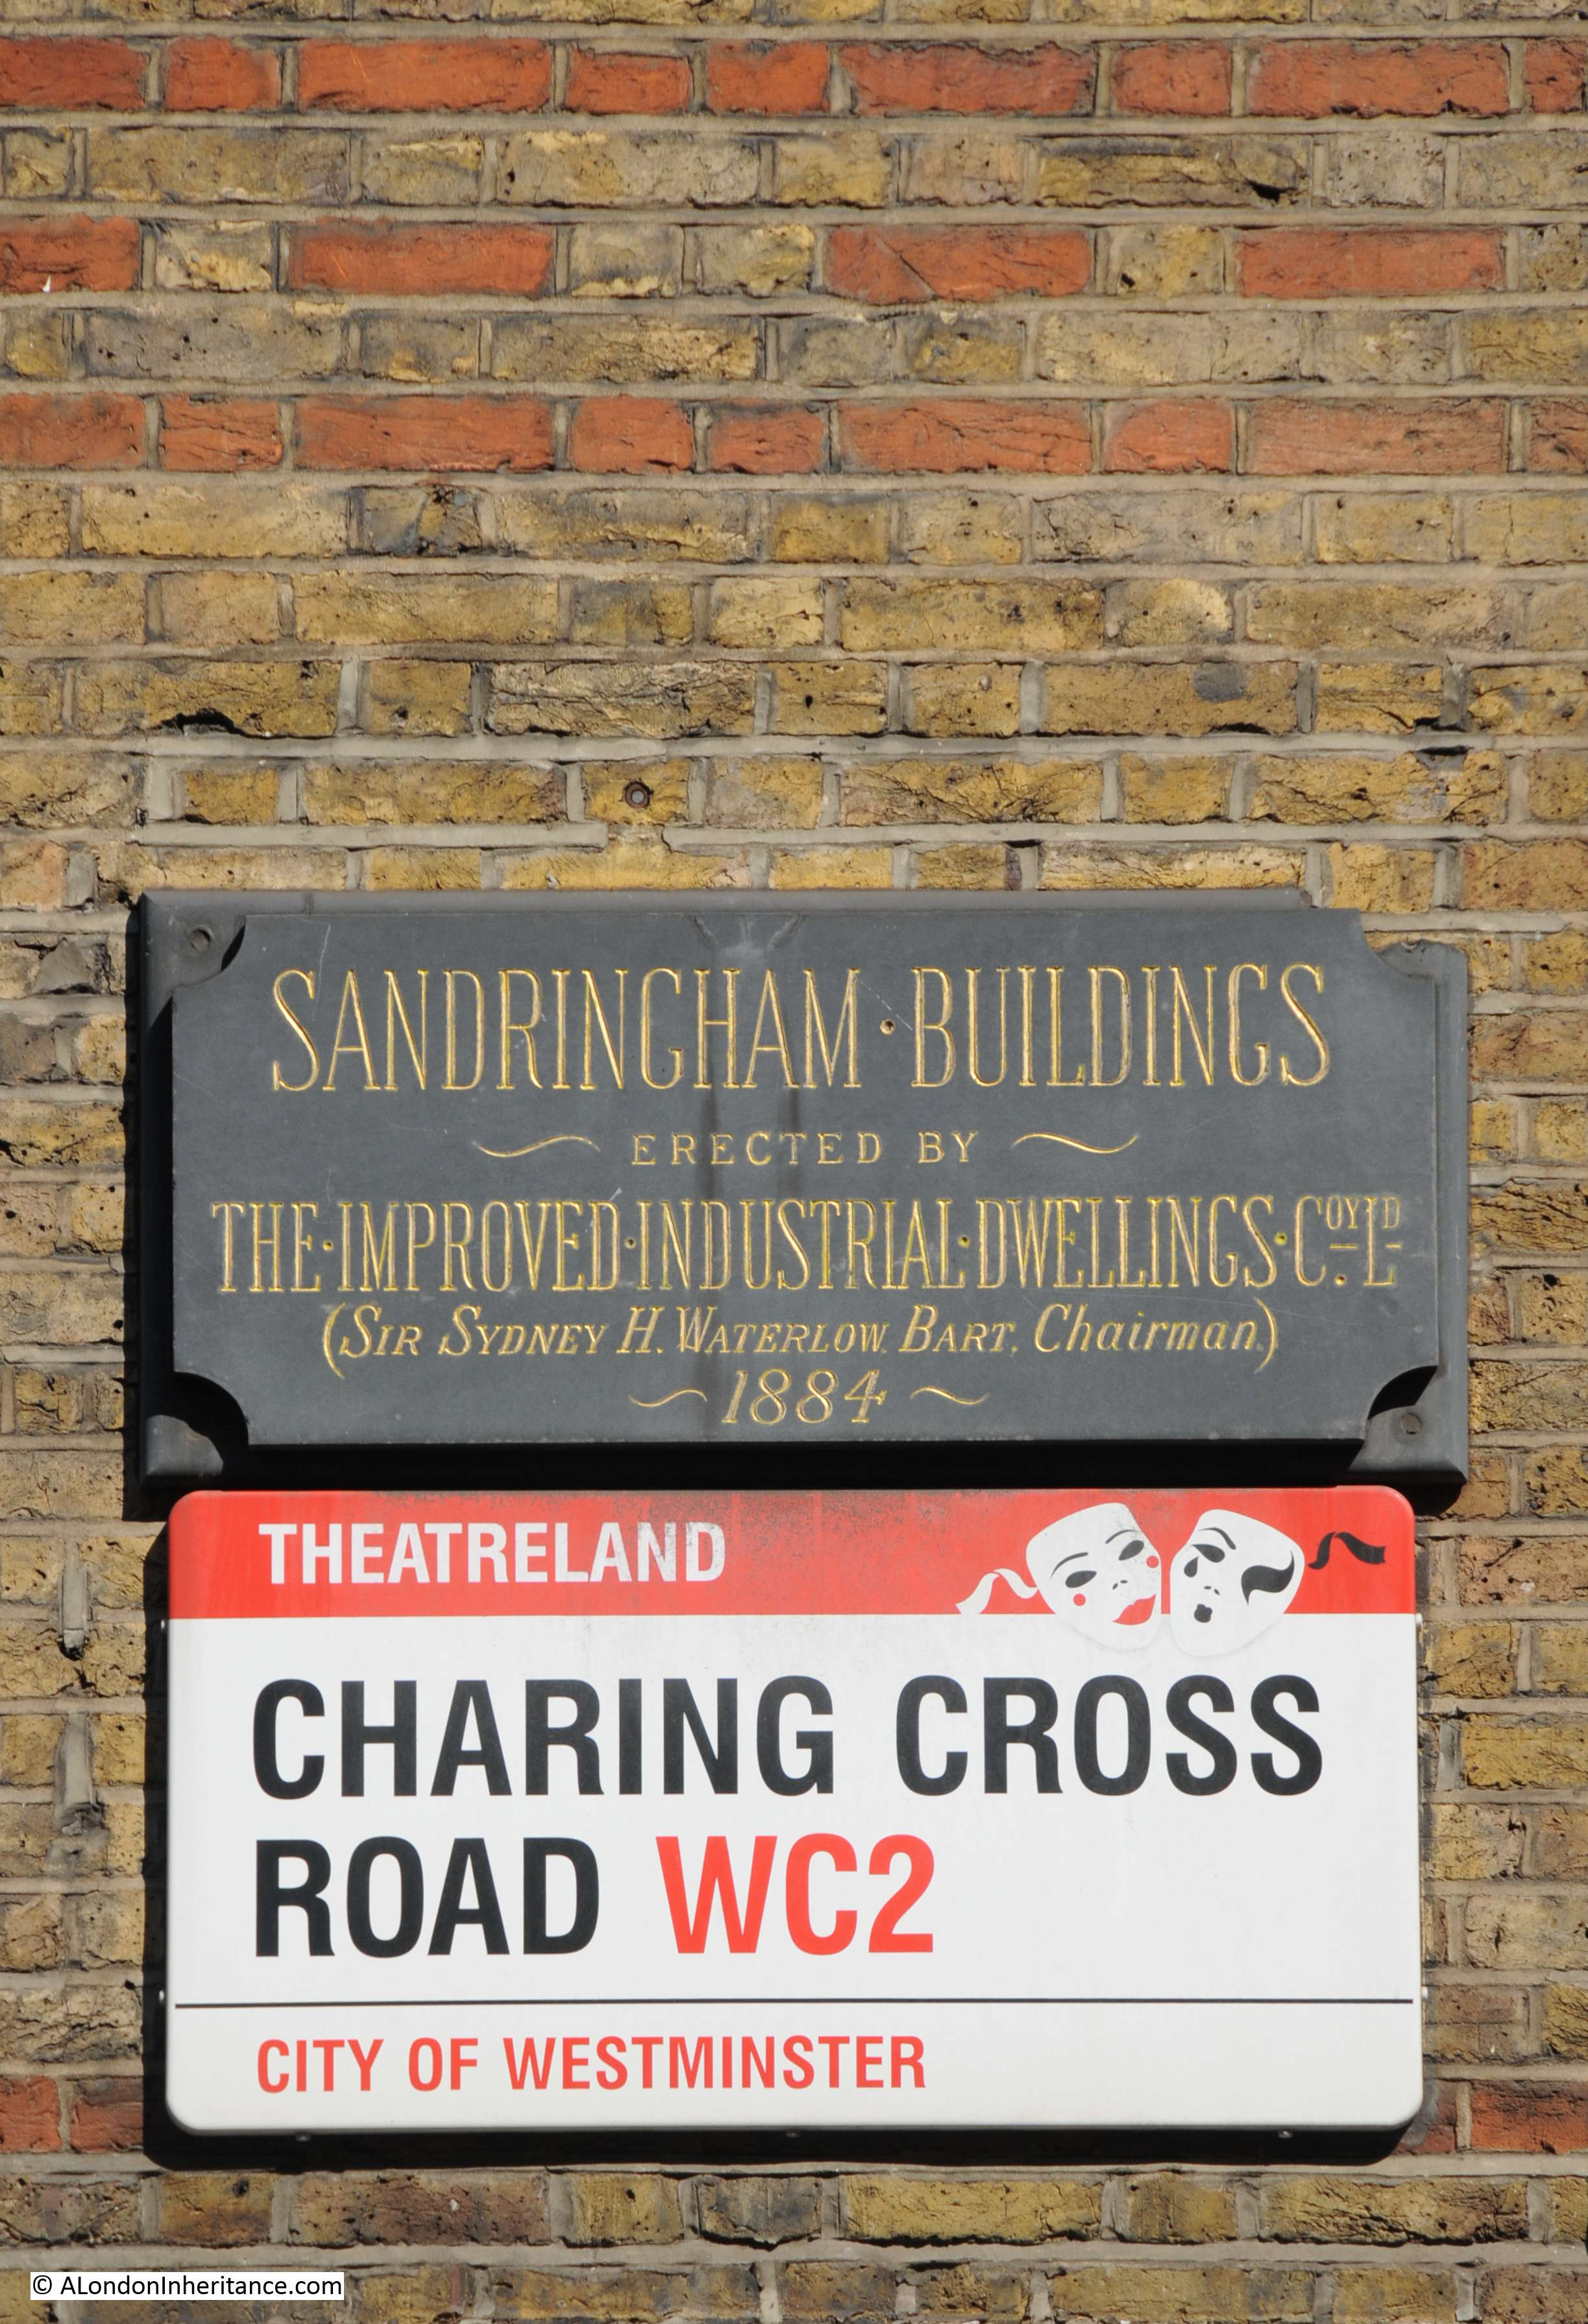 Charing Cross Road Archives - A London Inheritance